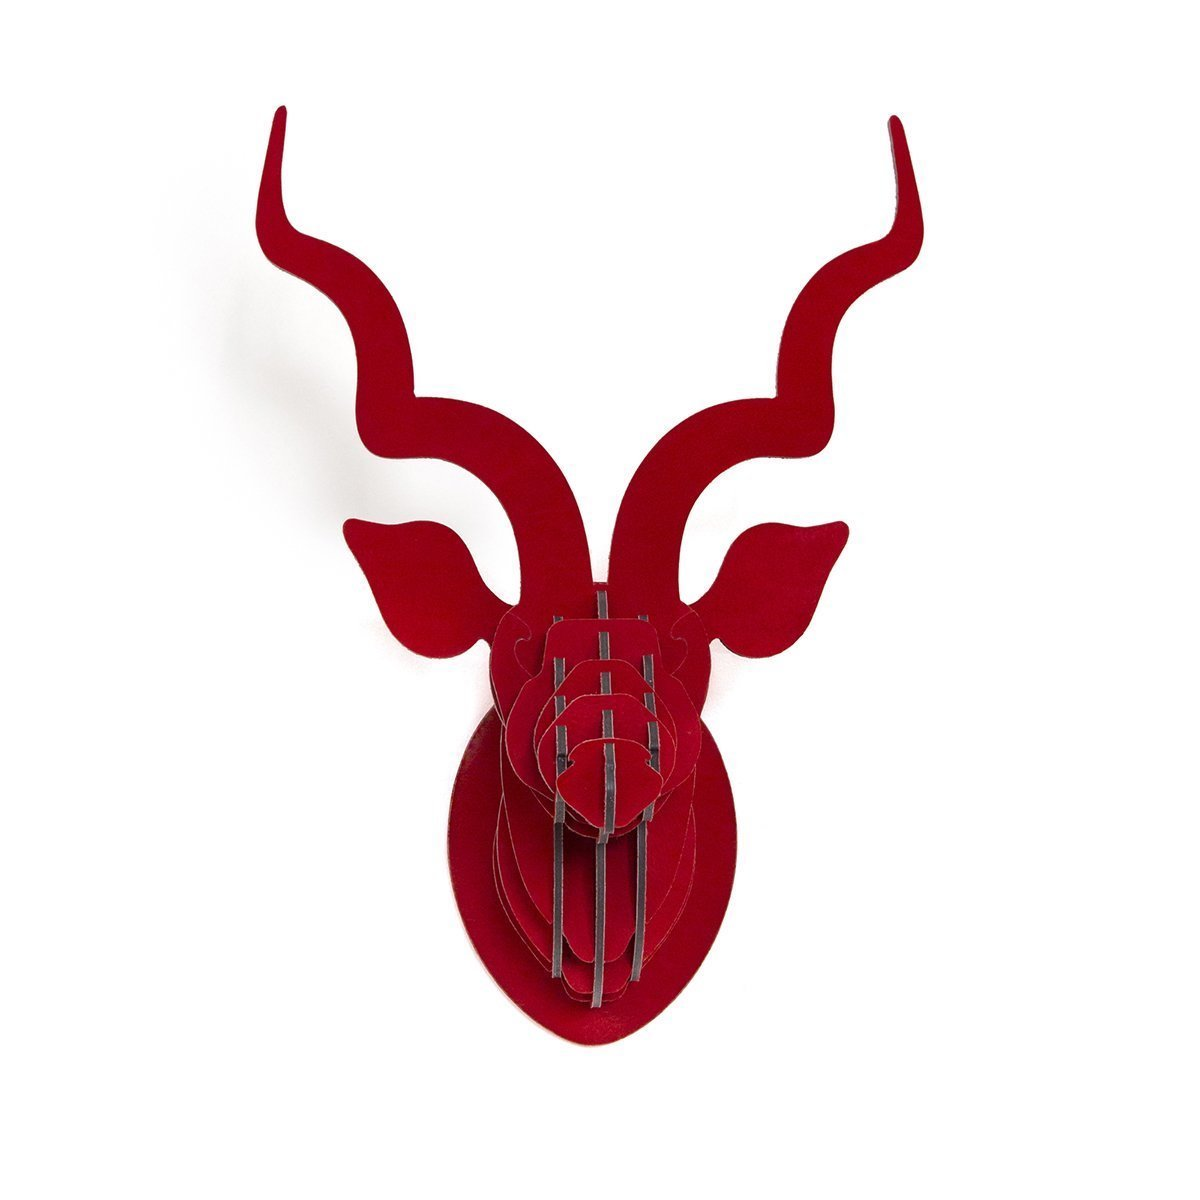 Head-On-Design-Red-suede-leather-kudu-head-01_2048x.jpg